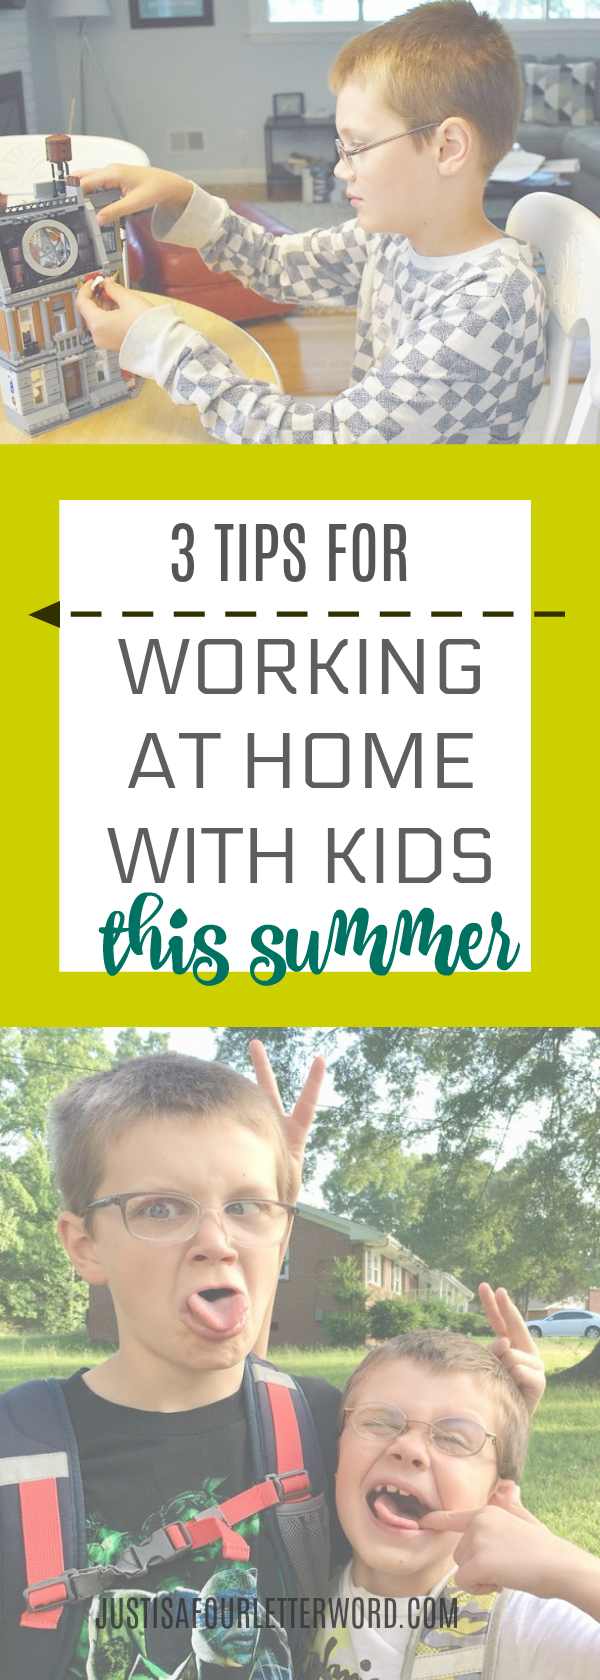 Use these 3 tips for working at home with kids this summer and everyone wins! Stay motivated and enjoy the flexibility of a job you can do at home.